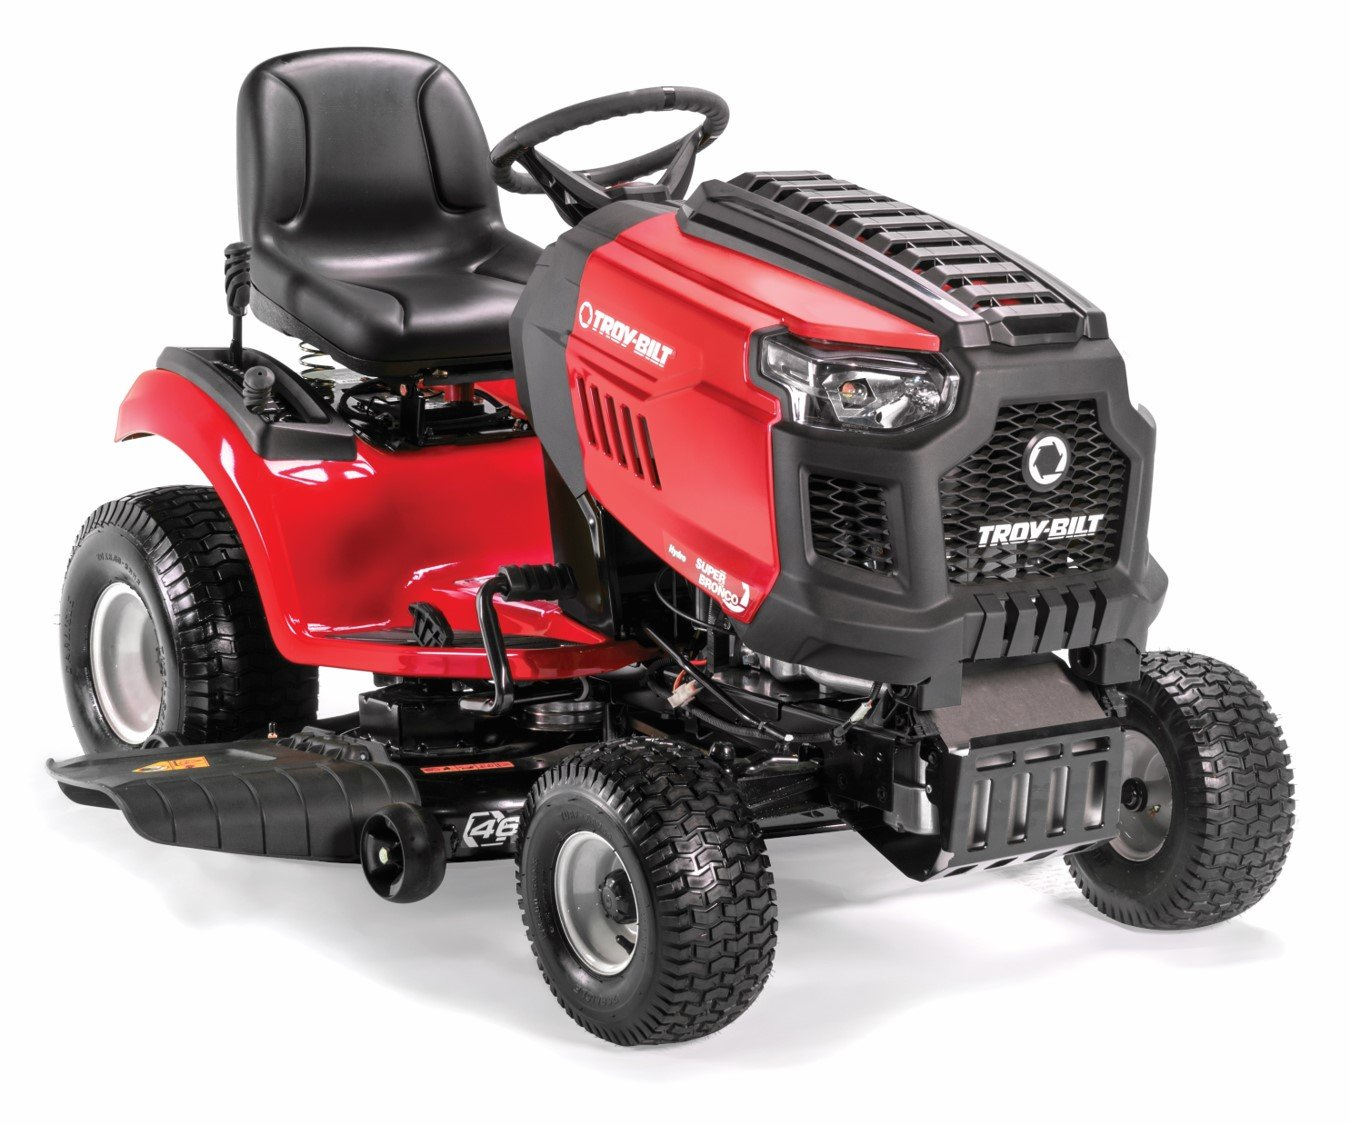 TB2246 Riding Lawn Tractor By Troy-Bilt